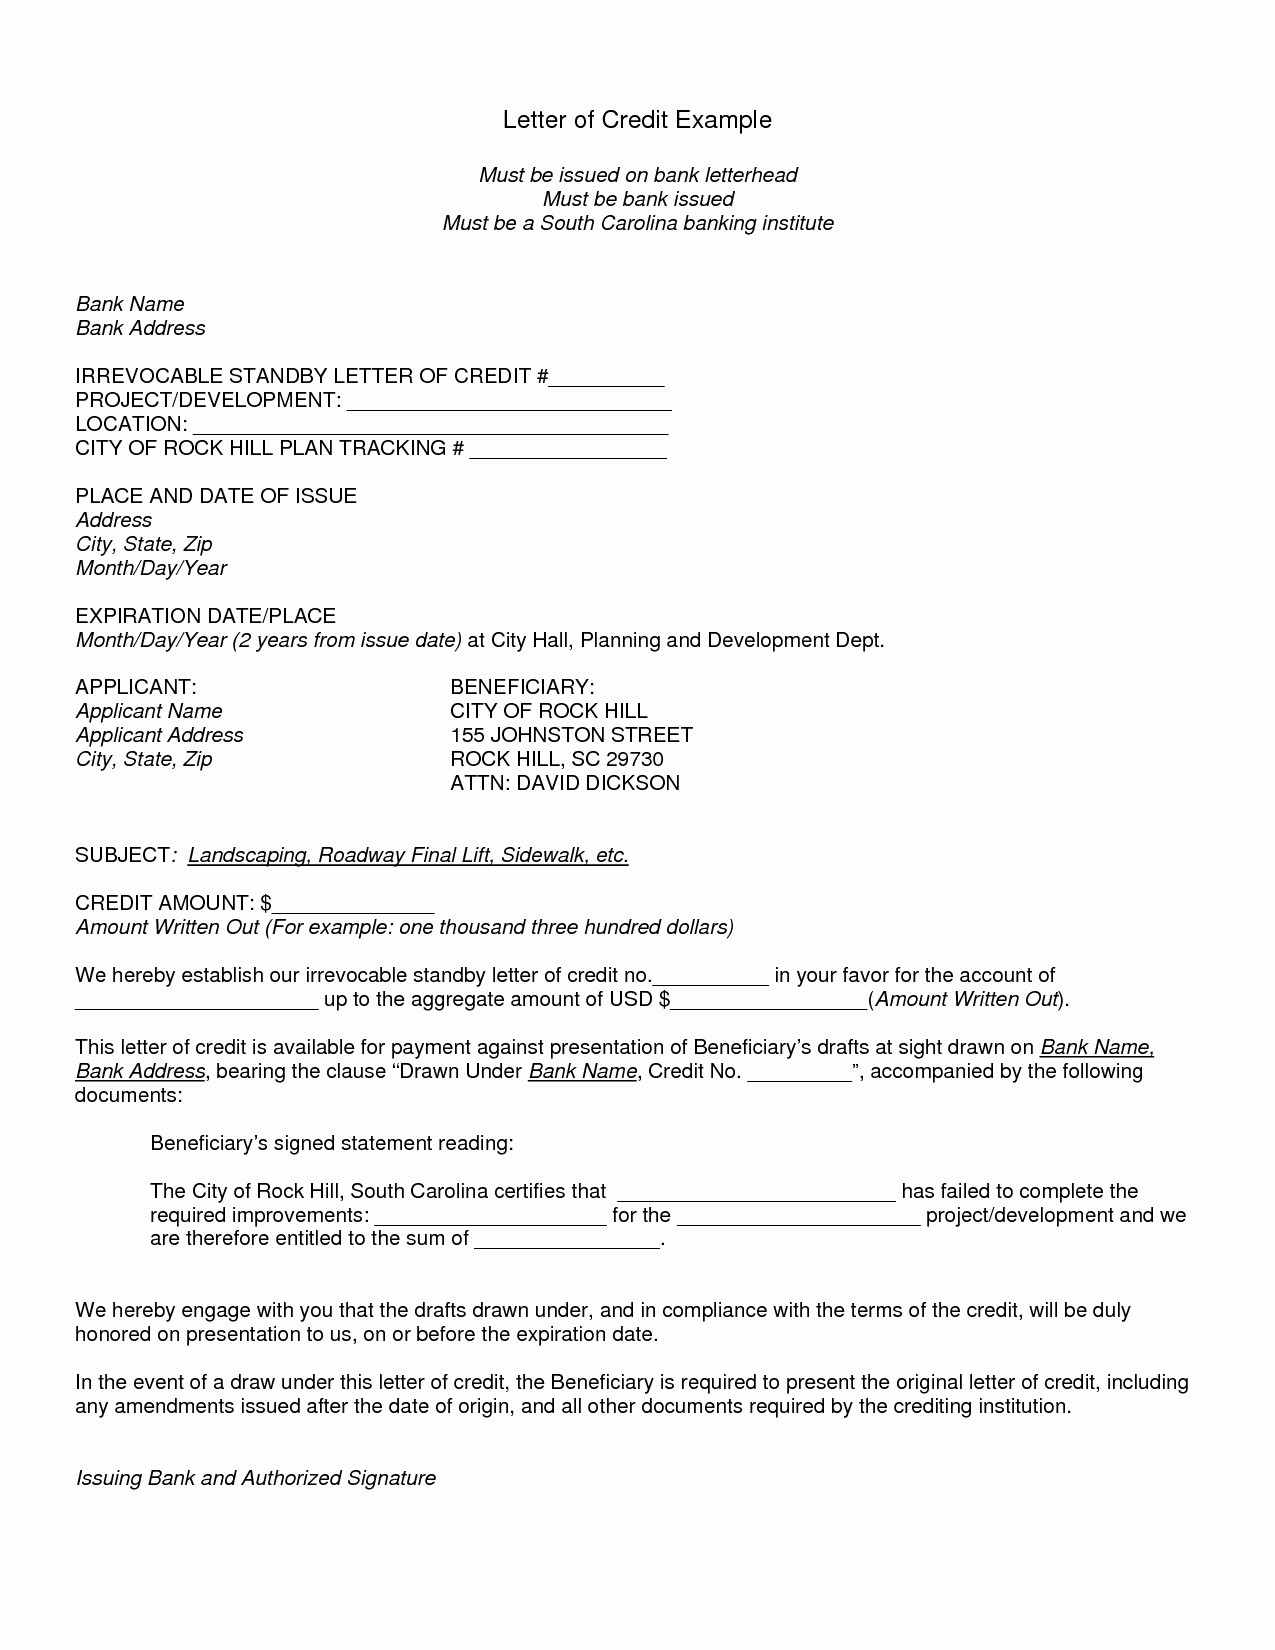 Irrevocable Letter Of Credit Template - Sample Of Letter Of Credit